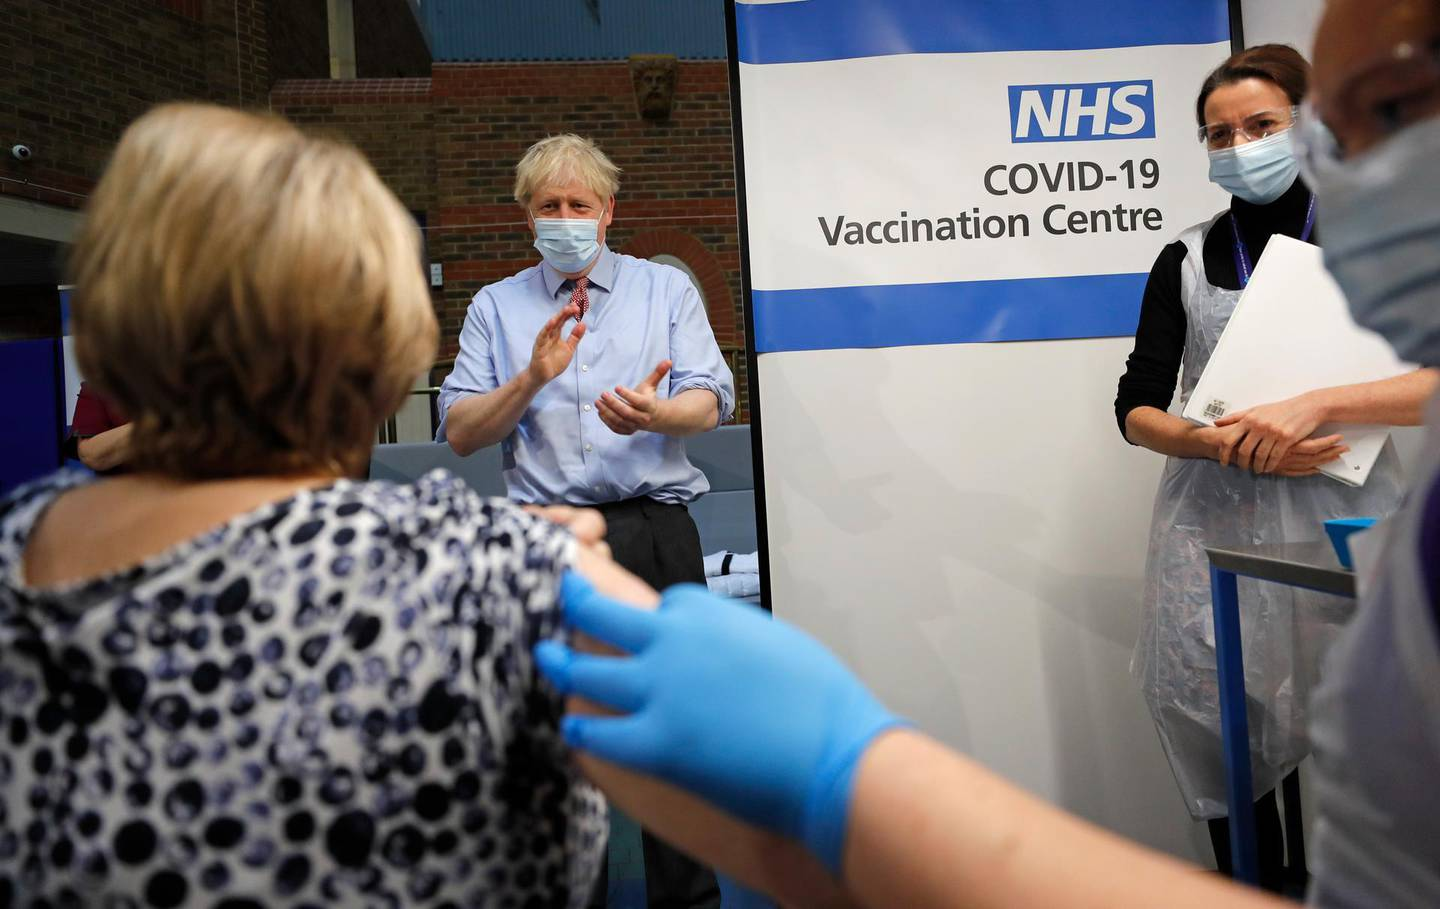 British Prime Minister Boris Johnson applauds after nurse Rebecca Cathersides administered the Pfizer-BioNTech COVID-19 vaccine to Lyn Wheeler at Guy's Hospital in London, Tuesday, Dec. 8, 2020. U.K. health authorities rolled out the first doses of a widely tested and independently reviewed COVID-19 vaccine Tuesday, starting a global immunization program that is expected to gain momentum as more serums win approval. (AP Photo/Frank Augstein, Pool)